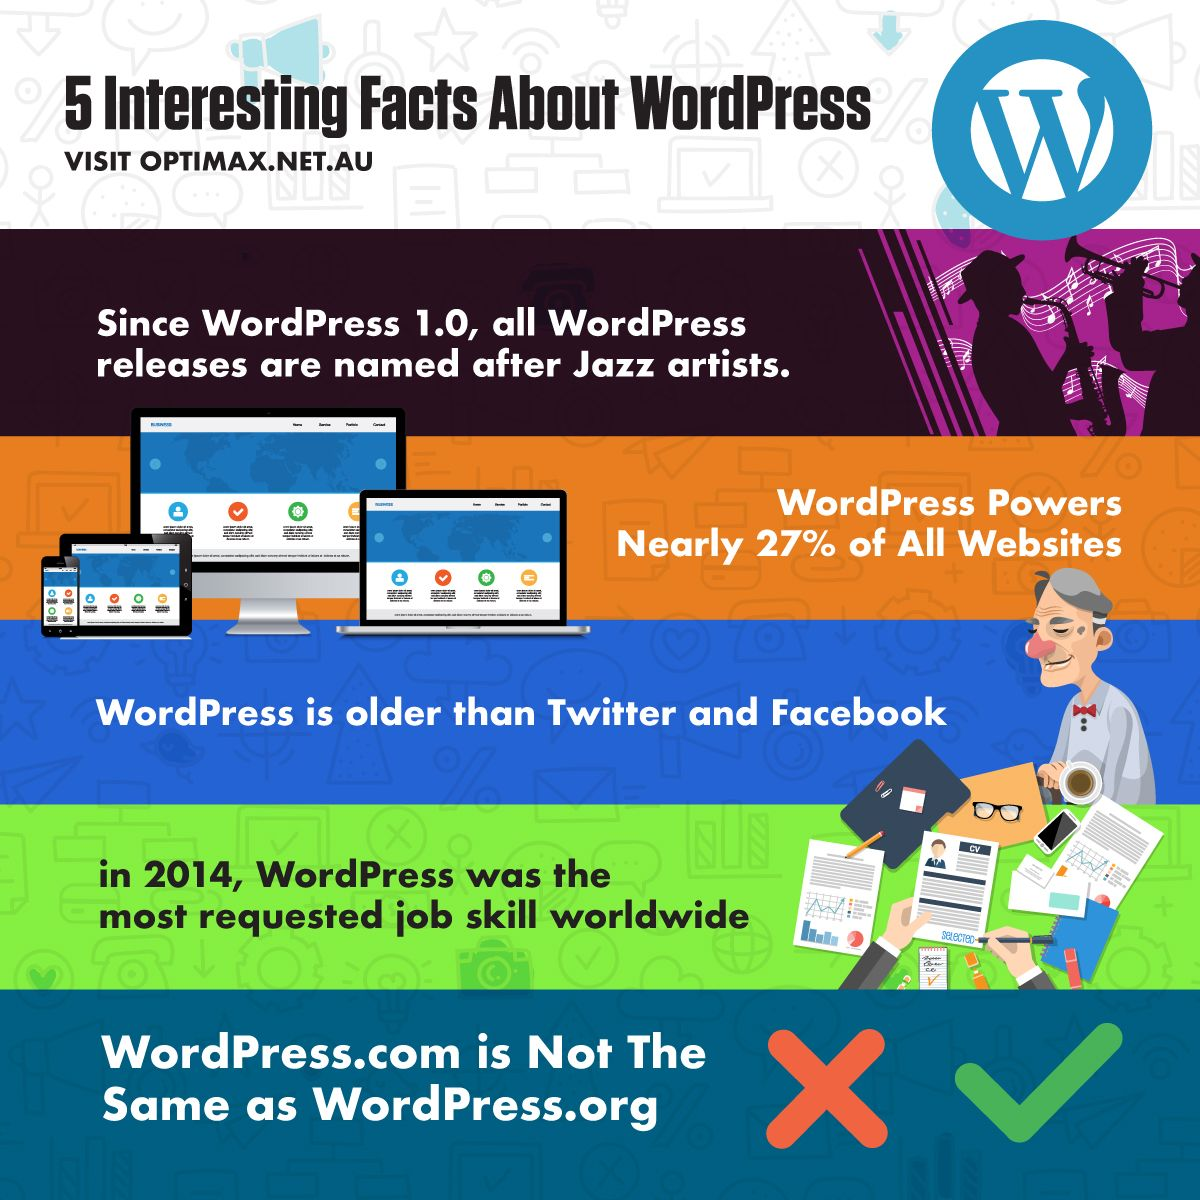 WordPress is the most widely used Content Management